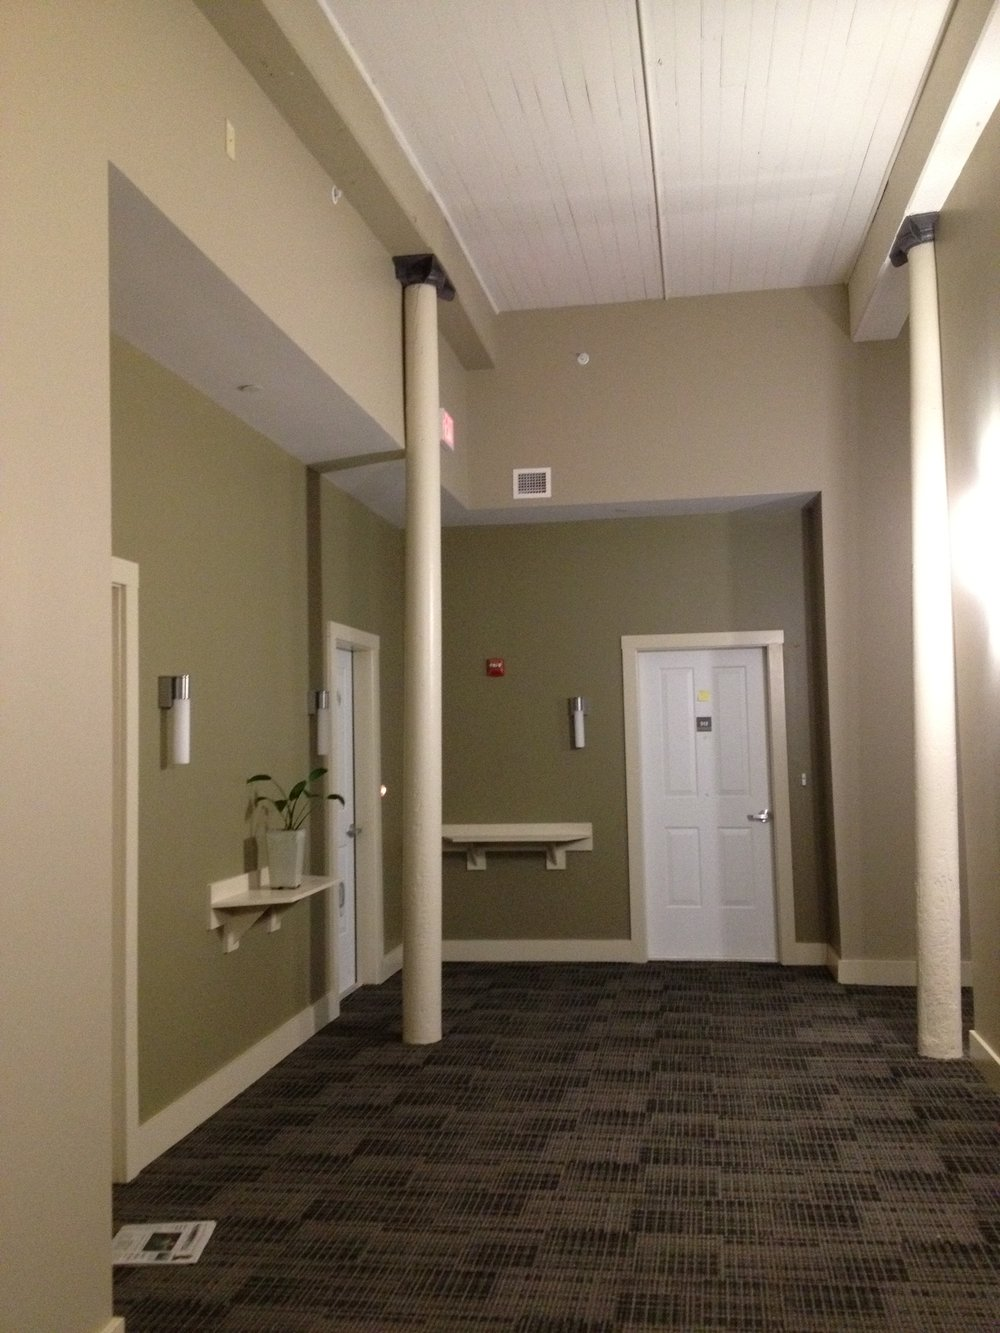 After - entrance to LBM space, 2nd floor showing ceiling.jpg